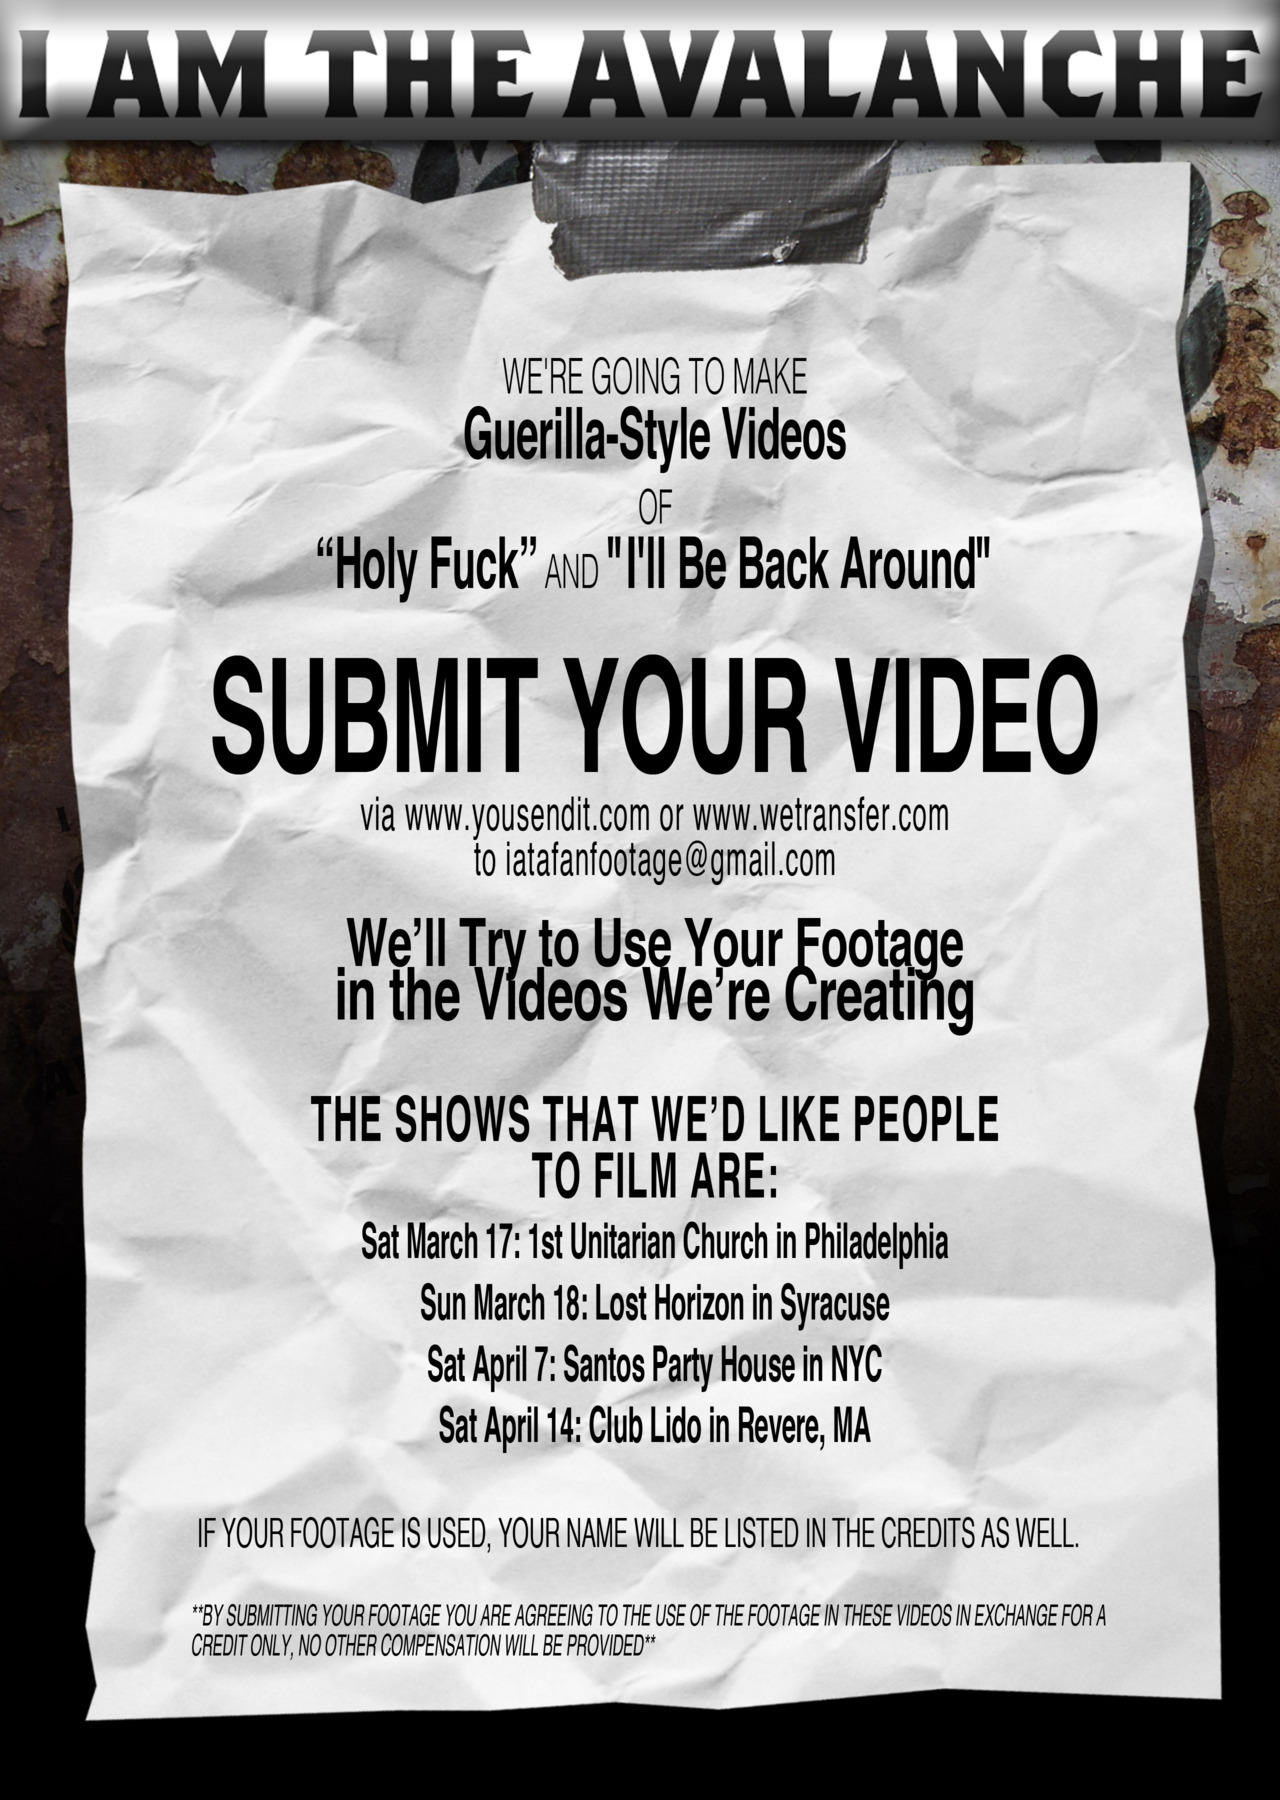 "We're going to make guerilla-style videos for ""Holy Fuck"" and ""I'll Be Back Around"" and we want people who are coming out to our shows in March and April to contribute!  Basically, if you shoot video of us playing these songs at one of the four shows listed below and send it to us via www.yousendit.com or www.wetransfer.com to IATAfanfootage@gmail.com, we'll try to use your footage in the videos we're creating. If your footage is used, your name will be listed in the credits as well.  The shows that are we'd like people to film ""Holy Fuck"" and ""I'll Be Back Around"" are:  Sat March 17: 1st Unitarian Church in Philadelphia Sun March 18: Lost Horizon in Syracuse Sat April 7: Santos Party House in NYC Sat April 14: Club Lido in Revere, MA **By submitting your footage you are agreeing to the use of the footage in these videos in exchange for a credit only, no other compensation will be provided**"